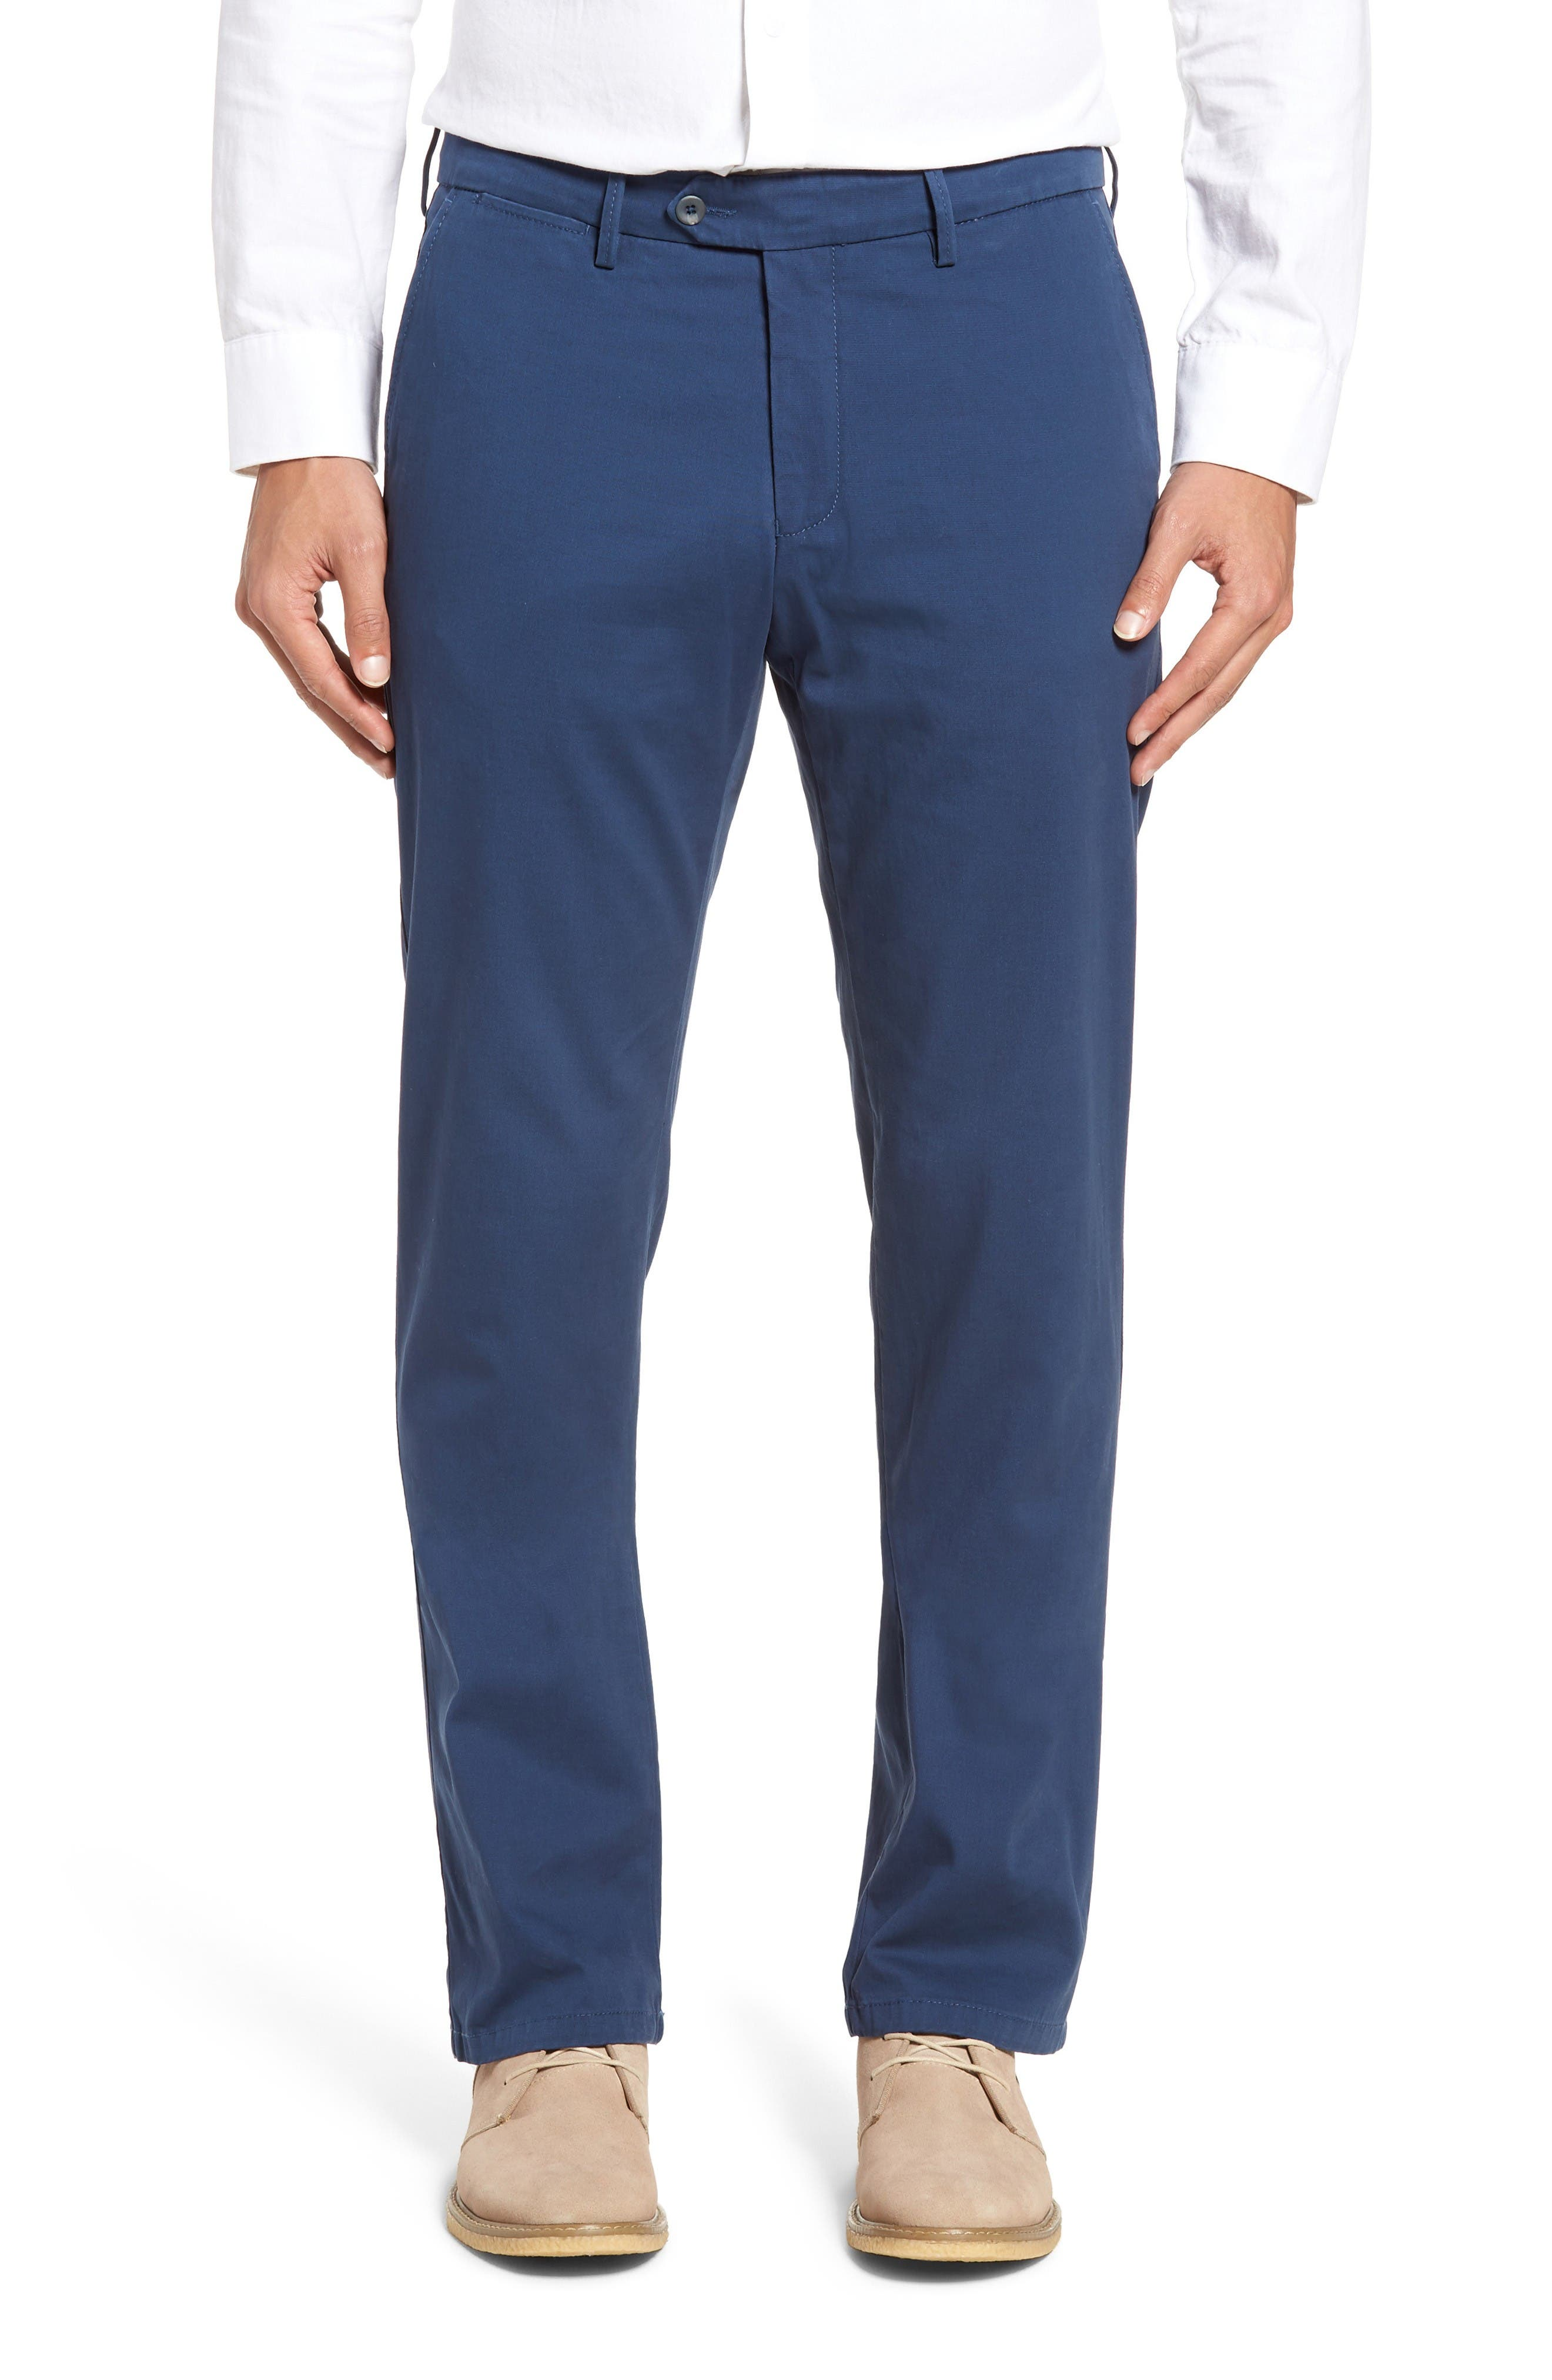 Ballin 'Atwater' Cotton Twill Pants